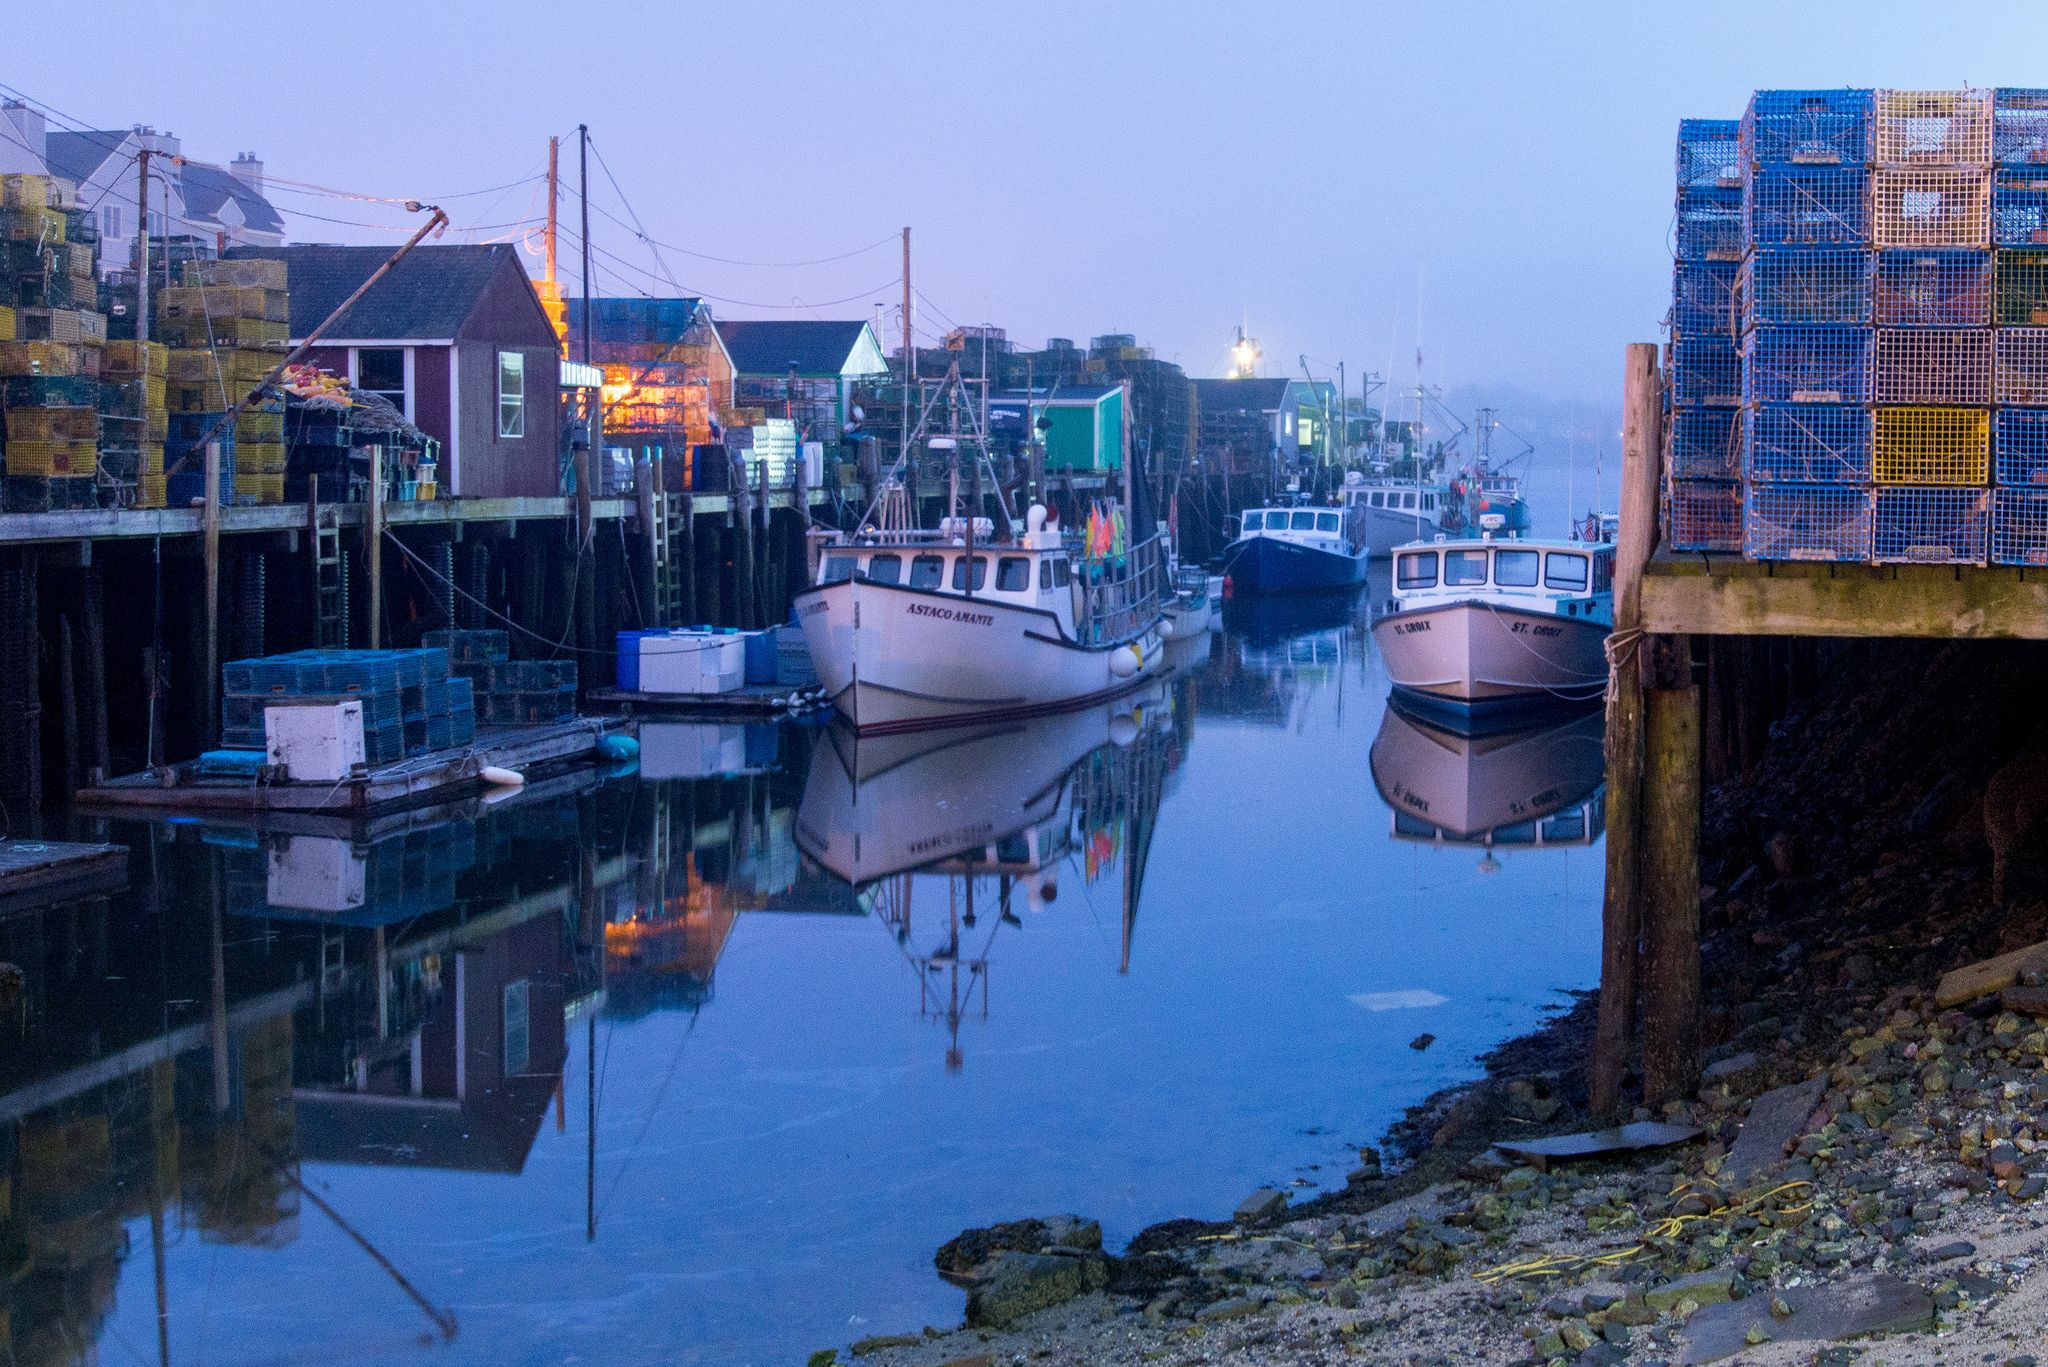 portland wharf with boats and lobster traps